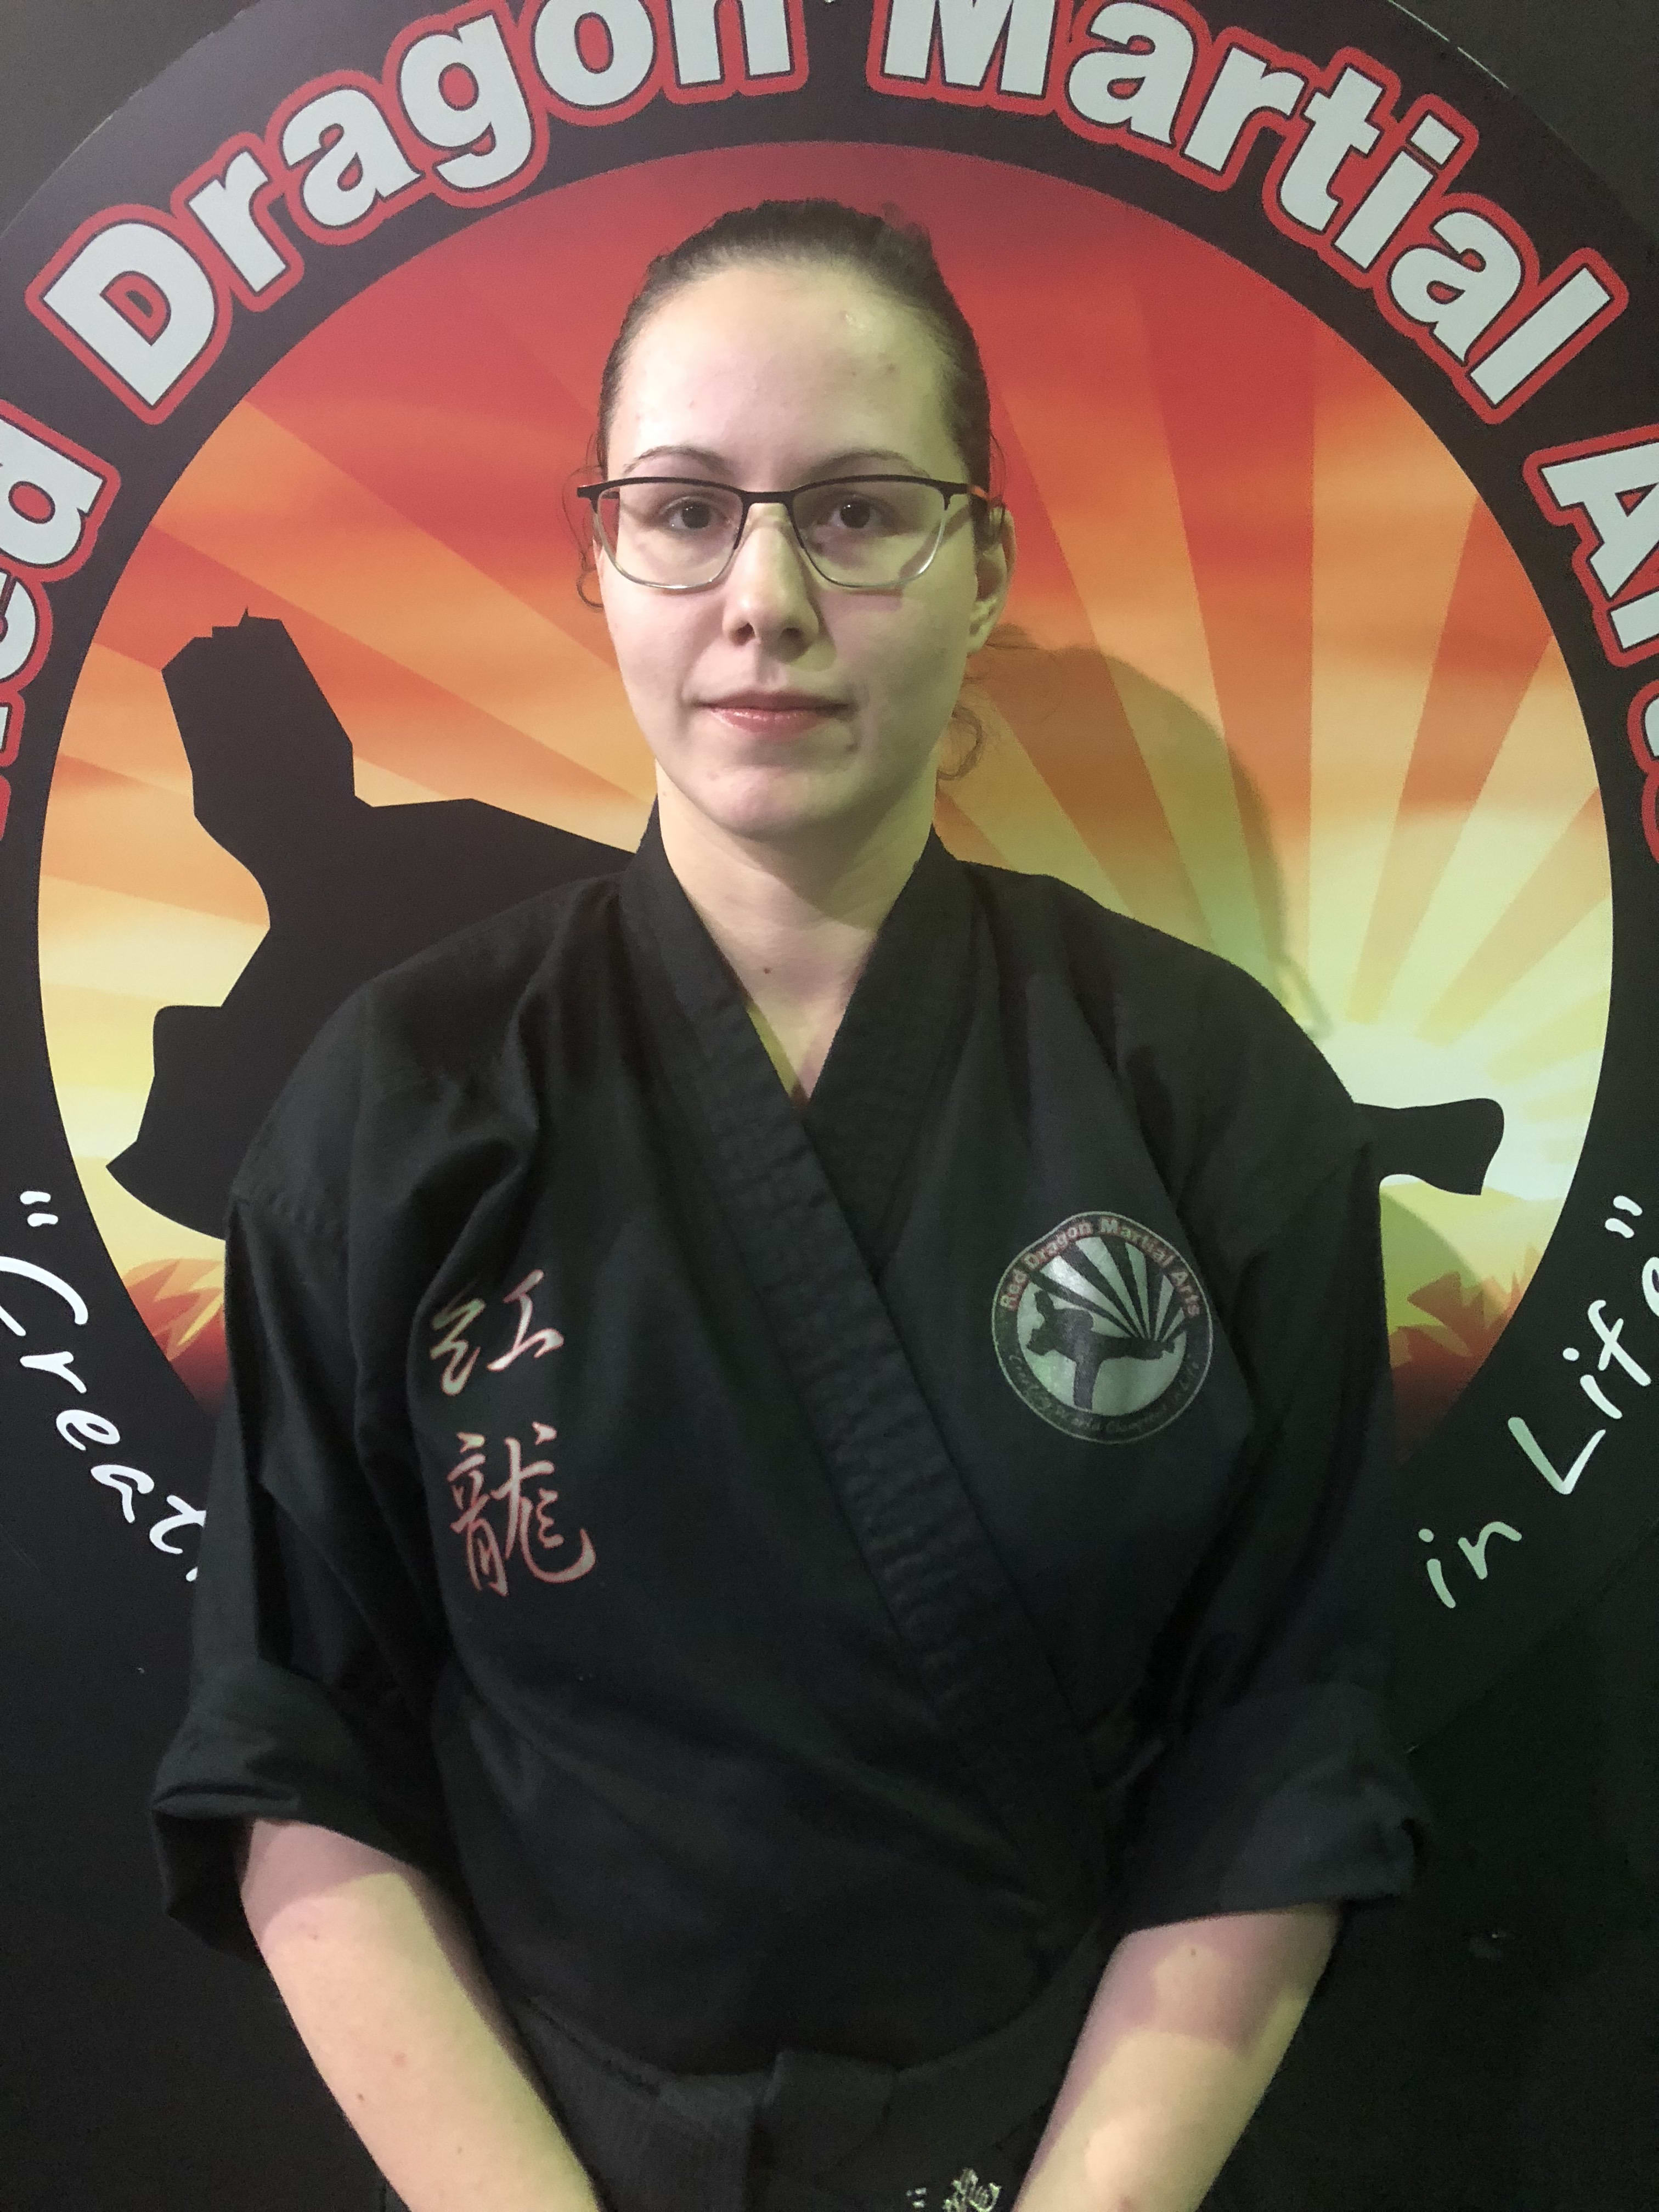 Eleonora De Felice in Caboolture - Red Dragon Martial Arts